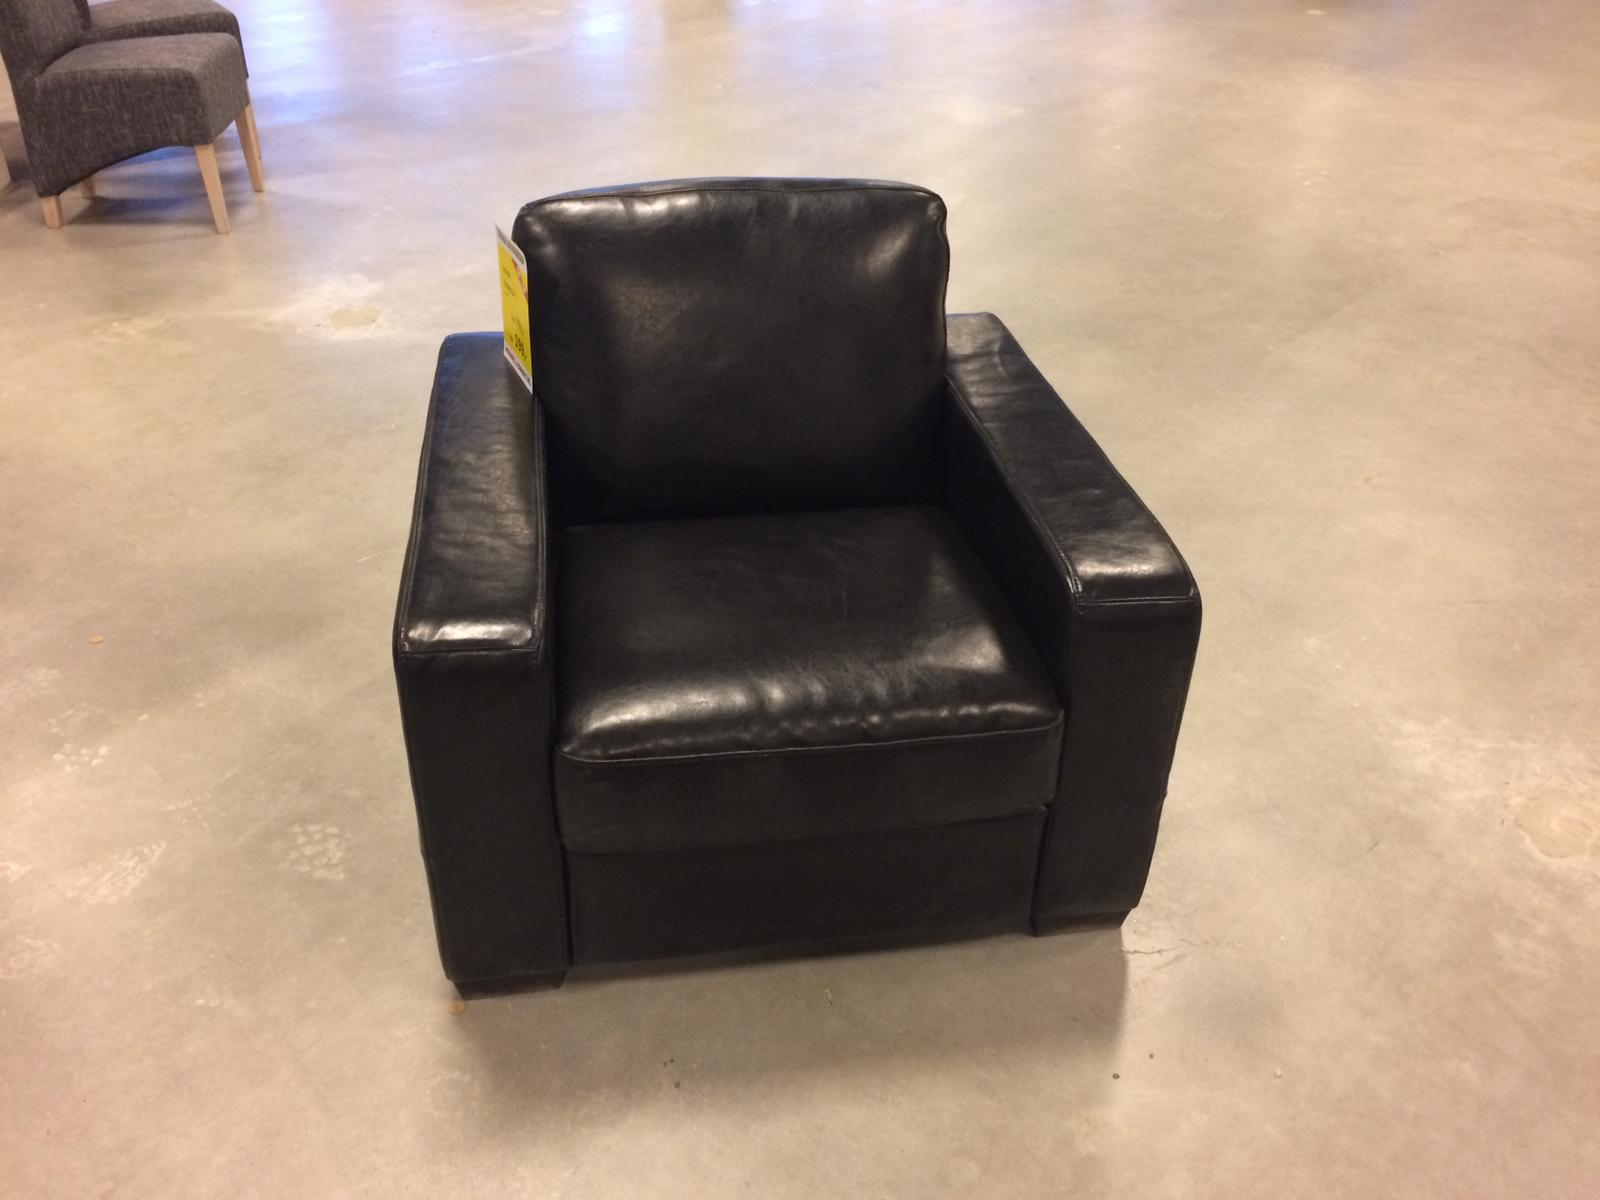 Imor fauteuil